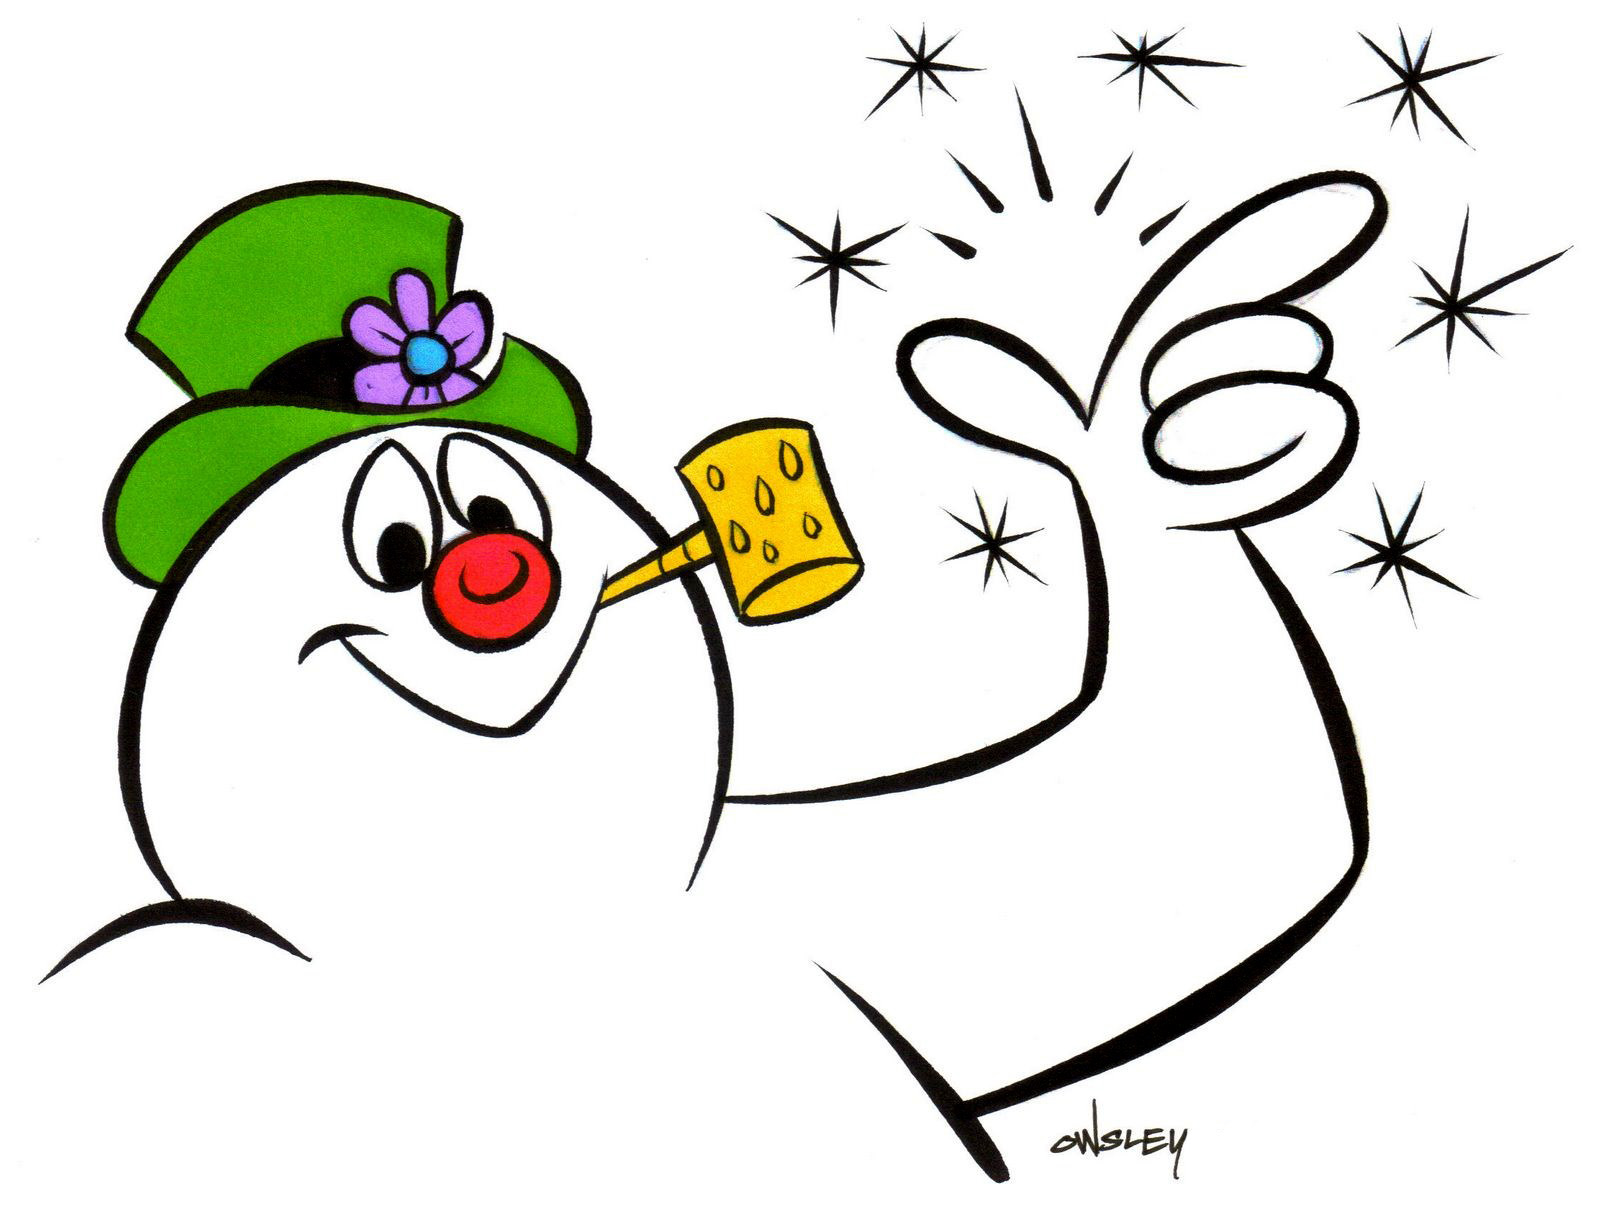 Patrick Owsley Cartoon Art and More!: FROSTY THE SNOWMAN ...